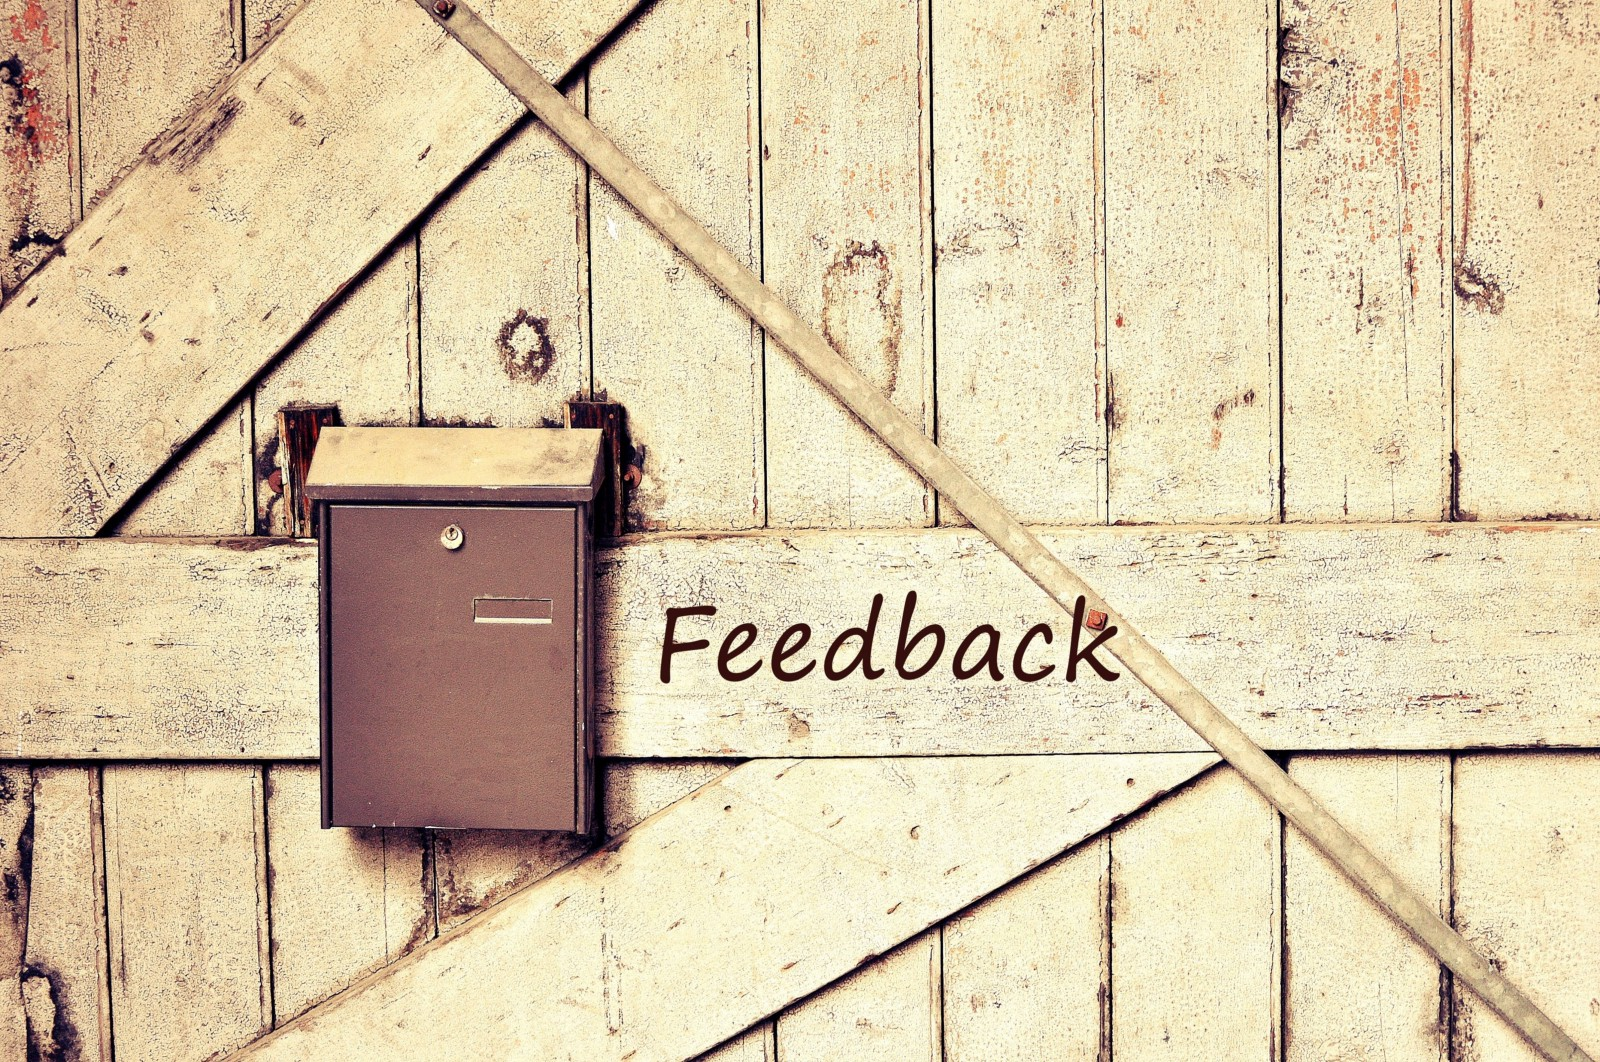 /how-to-get-the-most-out-of-performance-reviews-and-own-feedback-19f8faa1f450 feature image